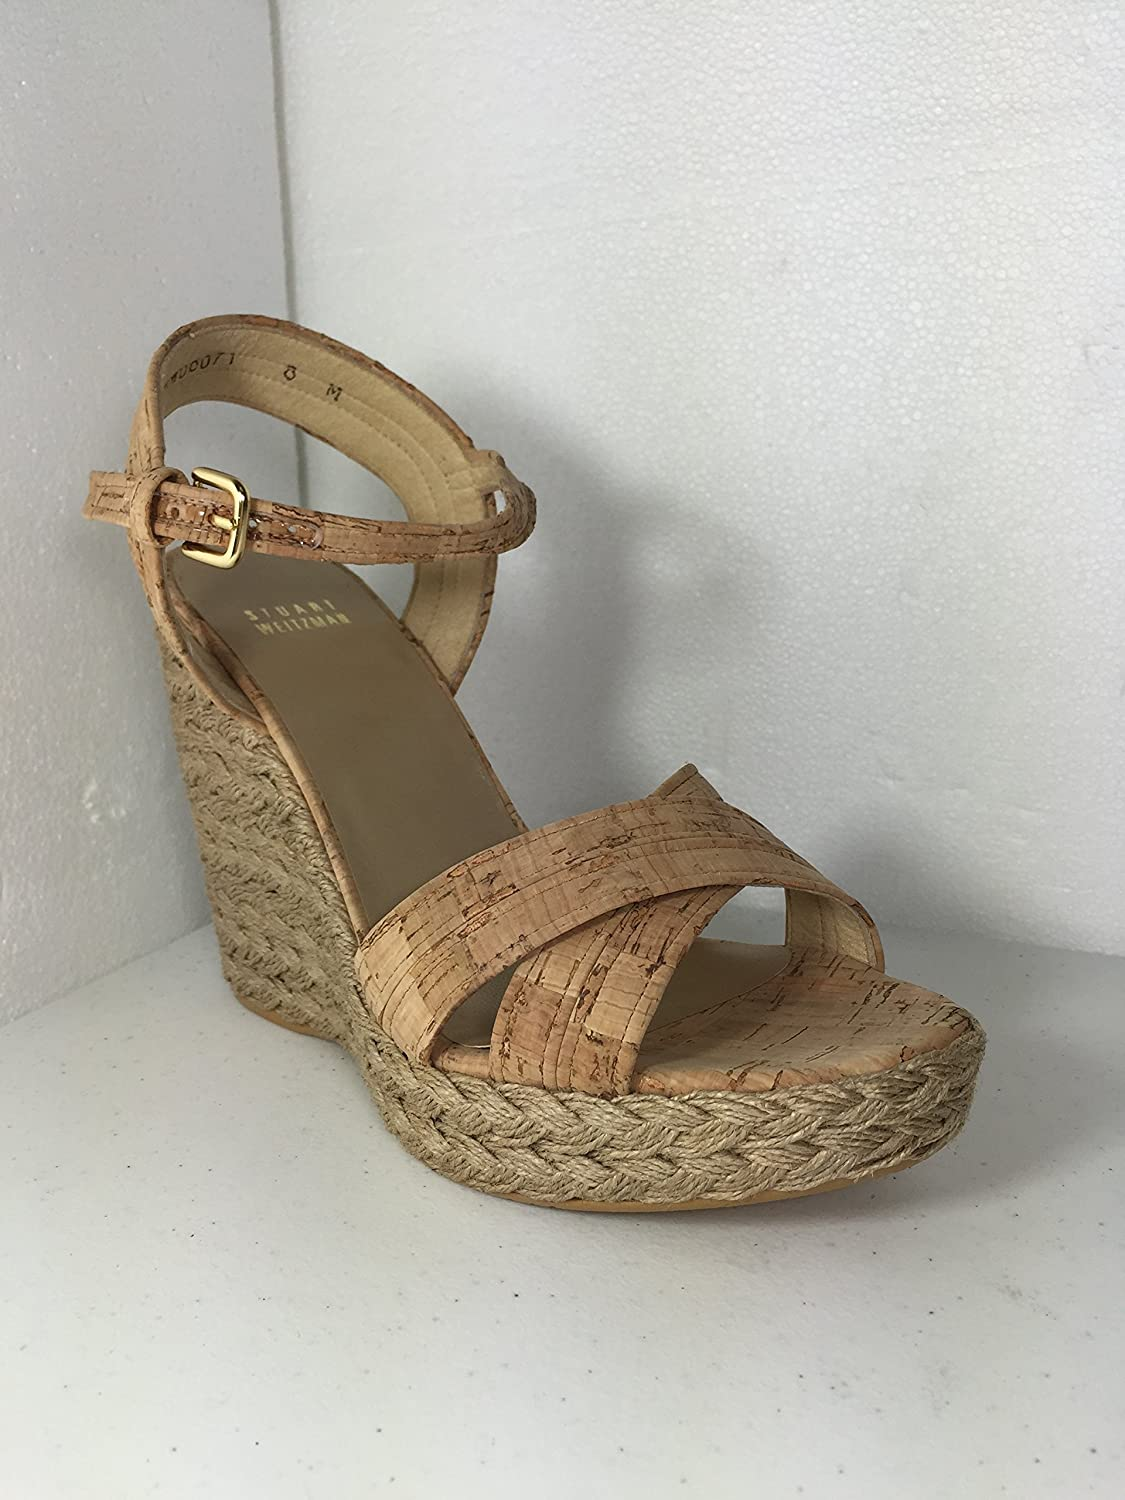 2f1995a782402 Images for Stuart Weitzman Women s Minky Minx Open Toe Wedge Sandals -  Natural Cork (8.5)